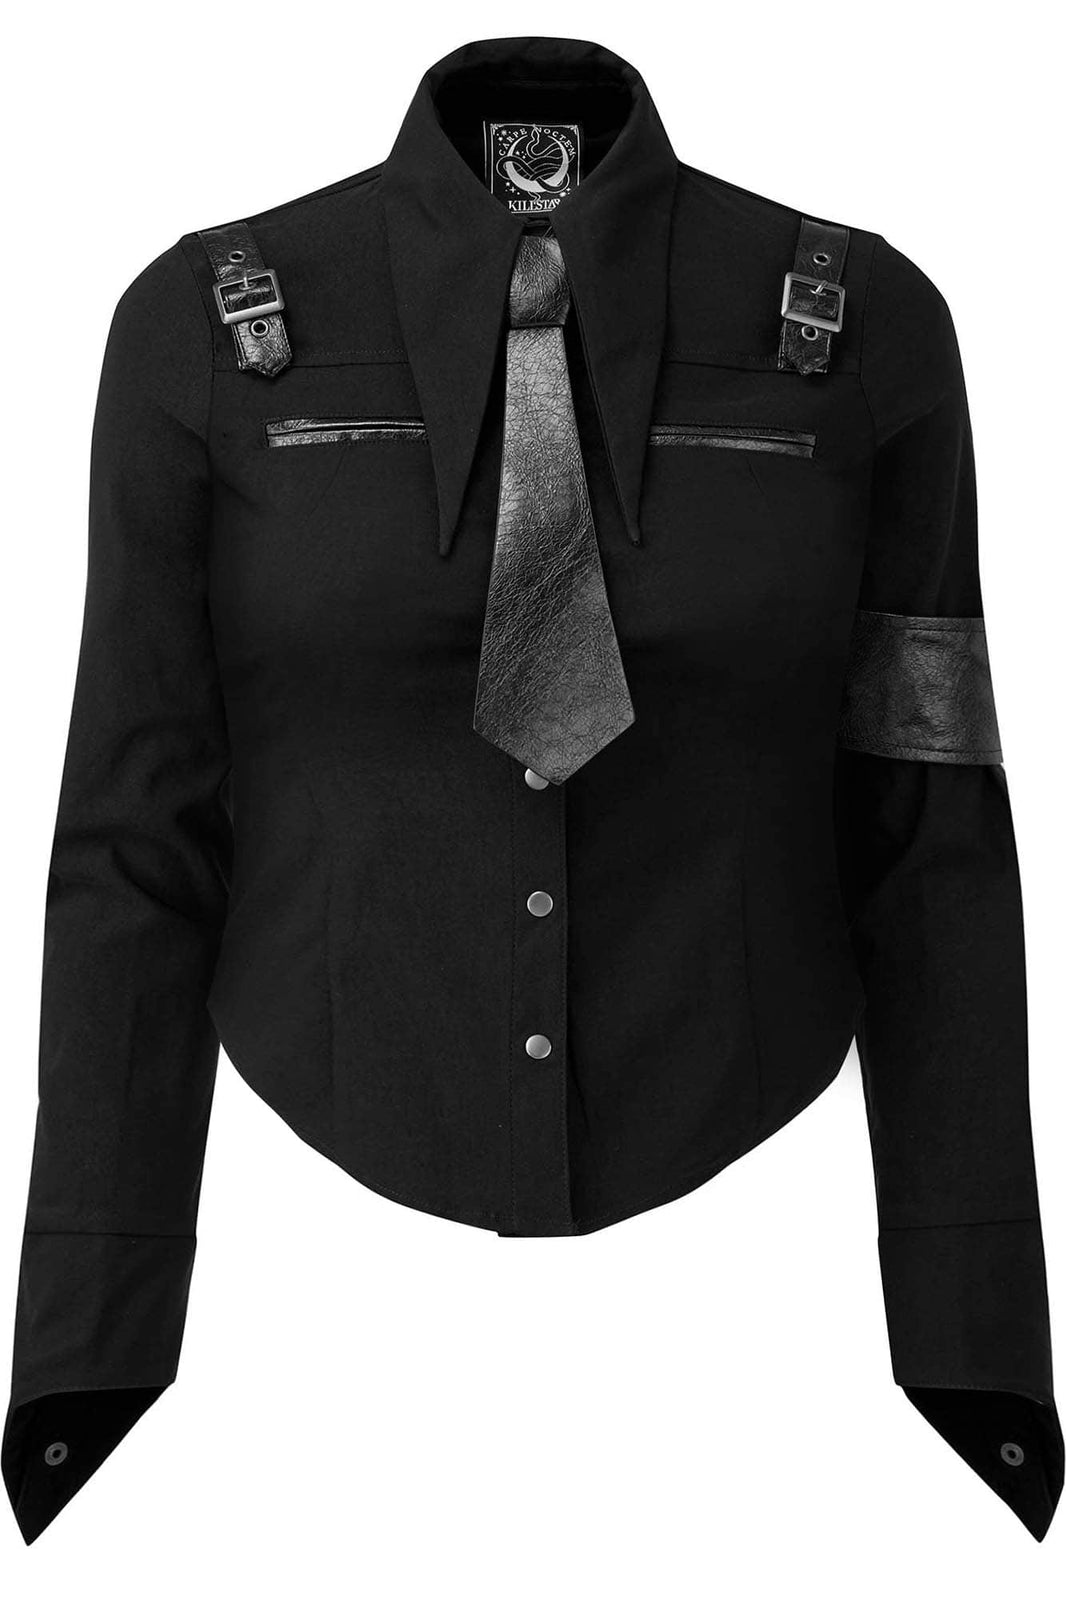 Secret Mission Button-Up Shirt [B] [PLUS]